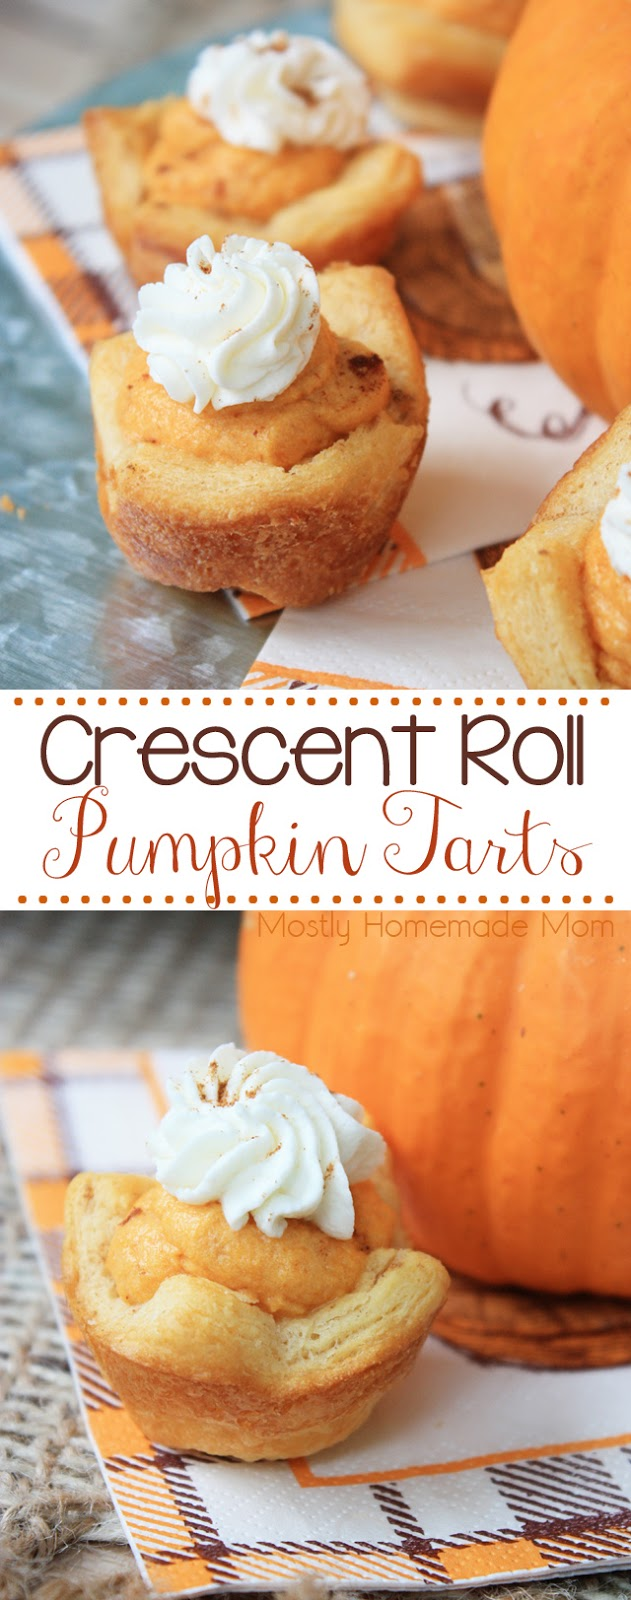 crescent roll pumpkin tart